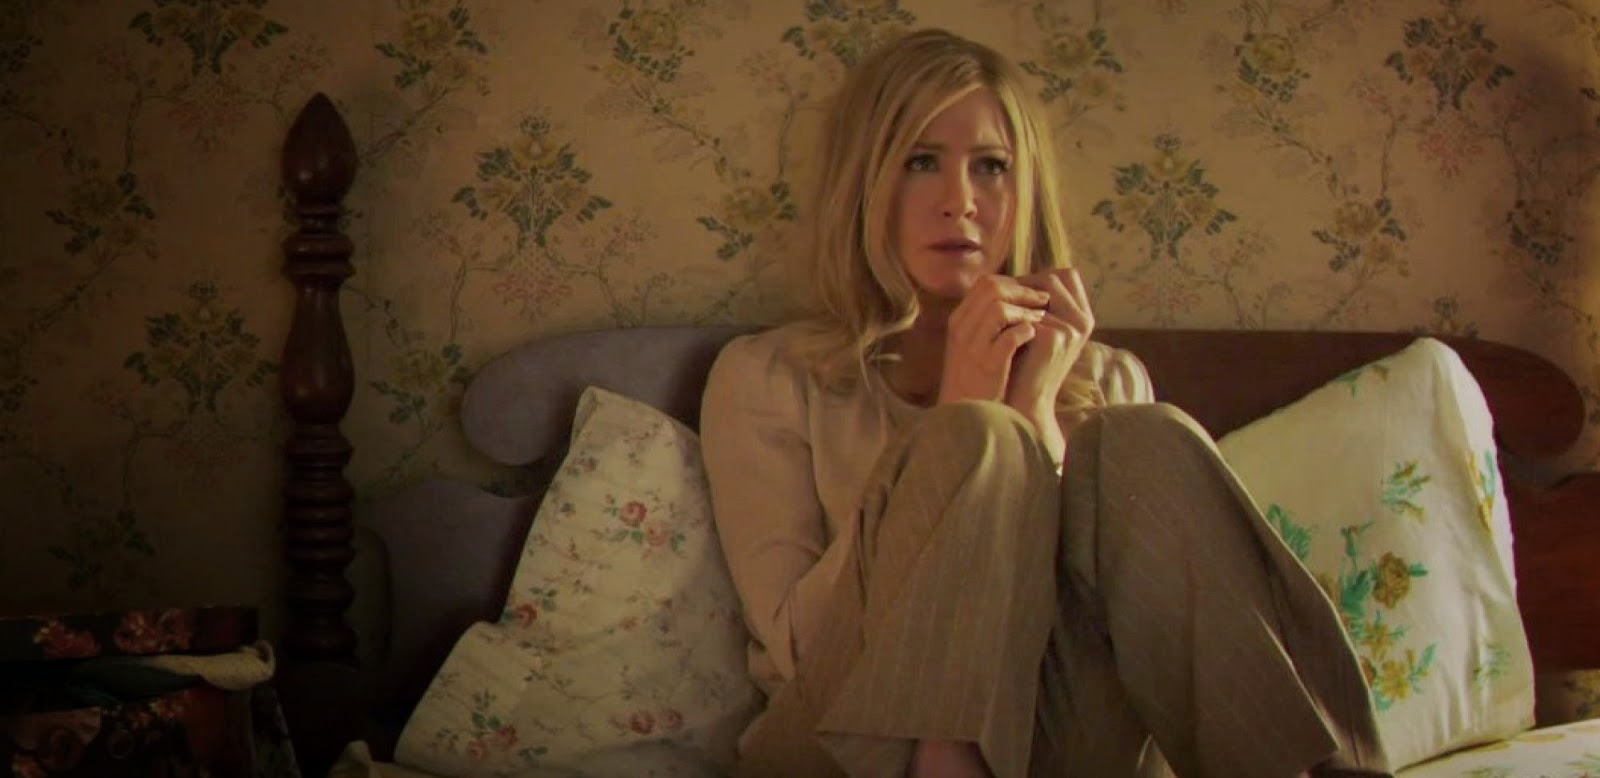 Jennifer Aniston é sequestrada no trailer da comédia Life of Crime, com Tim Robbins e Isla Fisher